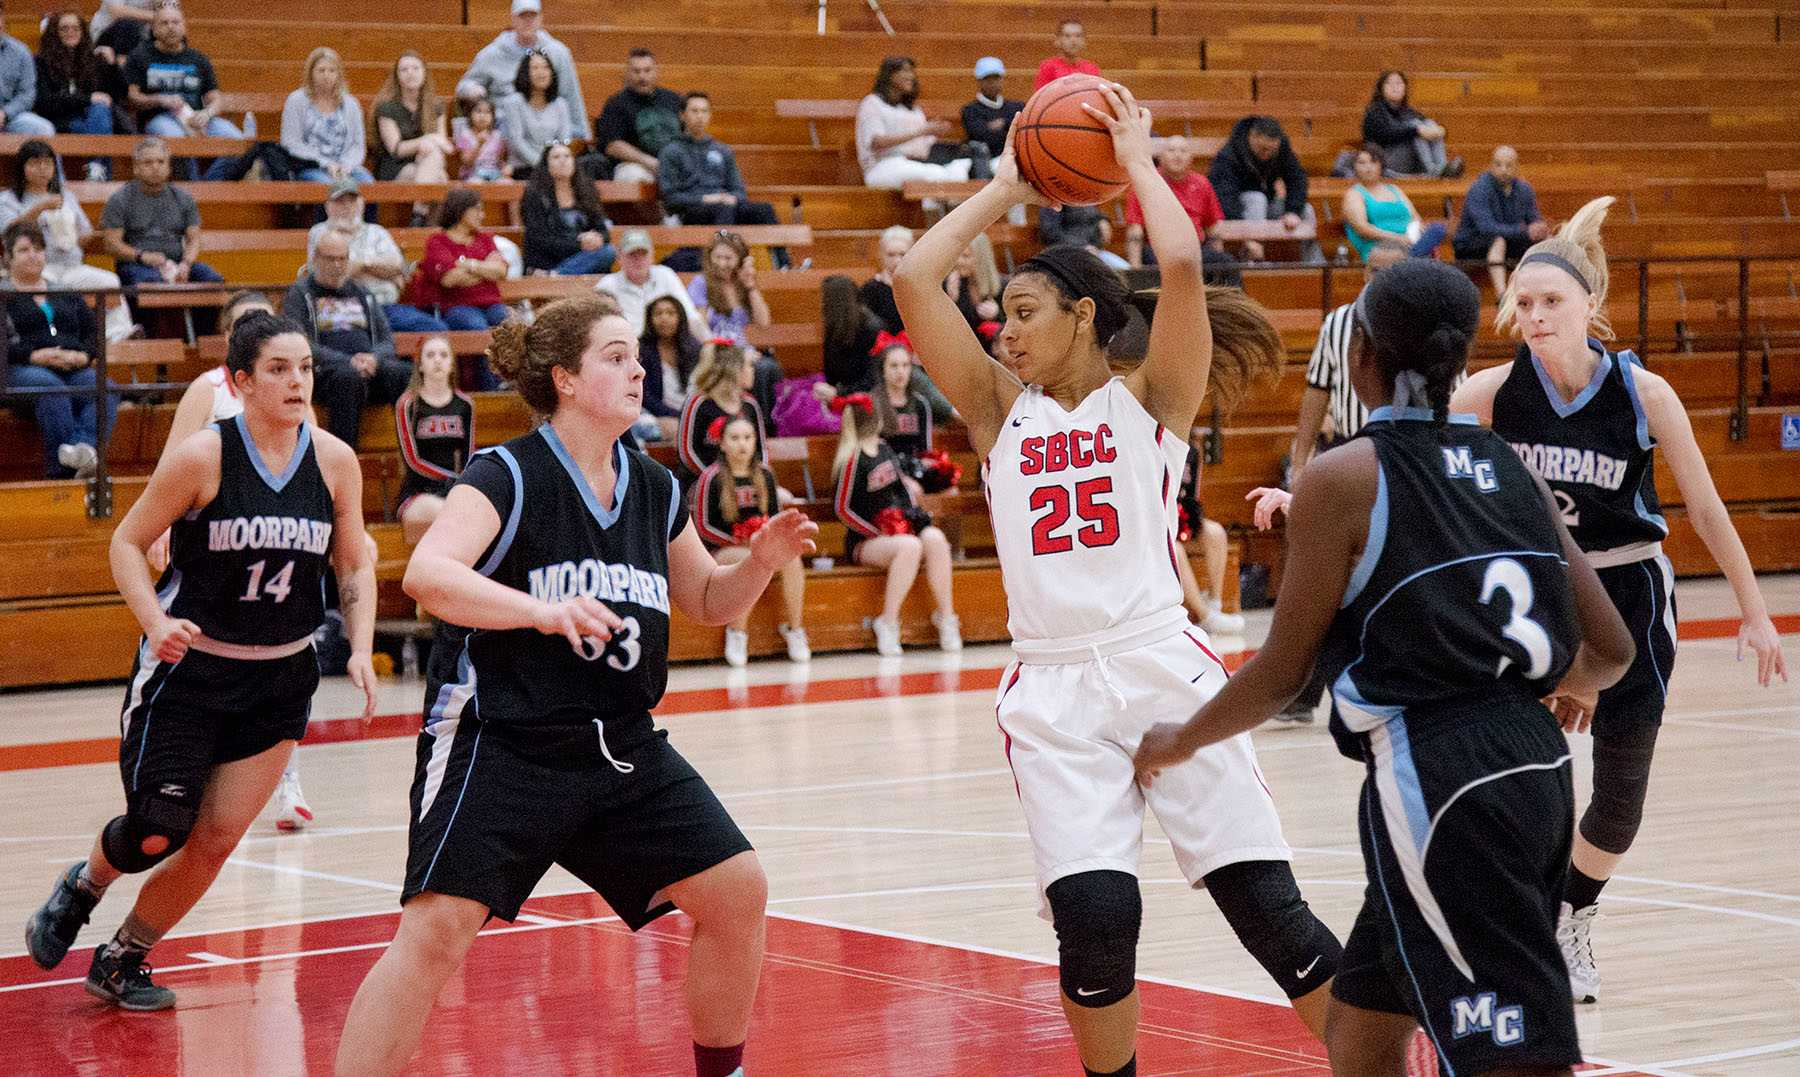 City College lady Vaquero, Destinee King (no. 25), looks for an opening against the Moorpark Raiders at the Sports Pavilion on Saturday, Feb. 13. The   Vaqueros lost 62-53.